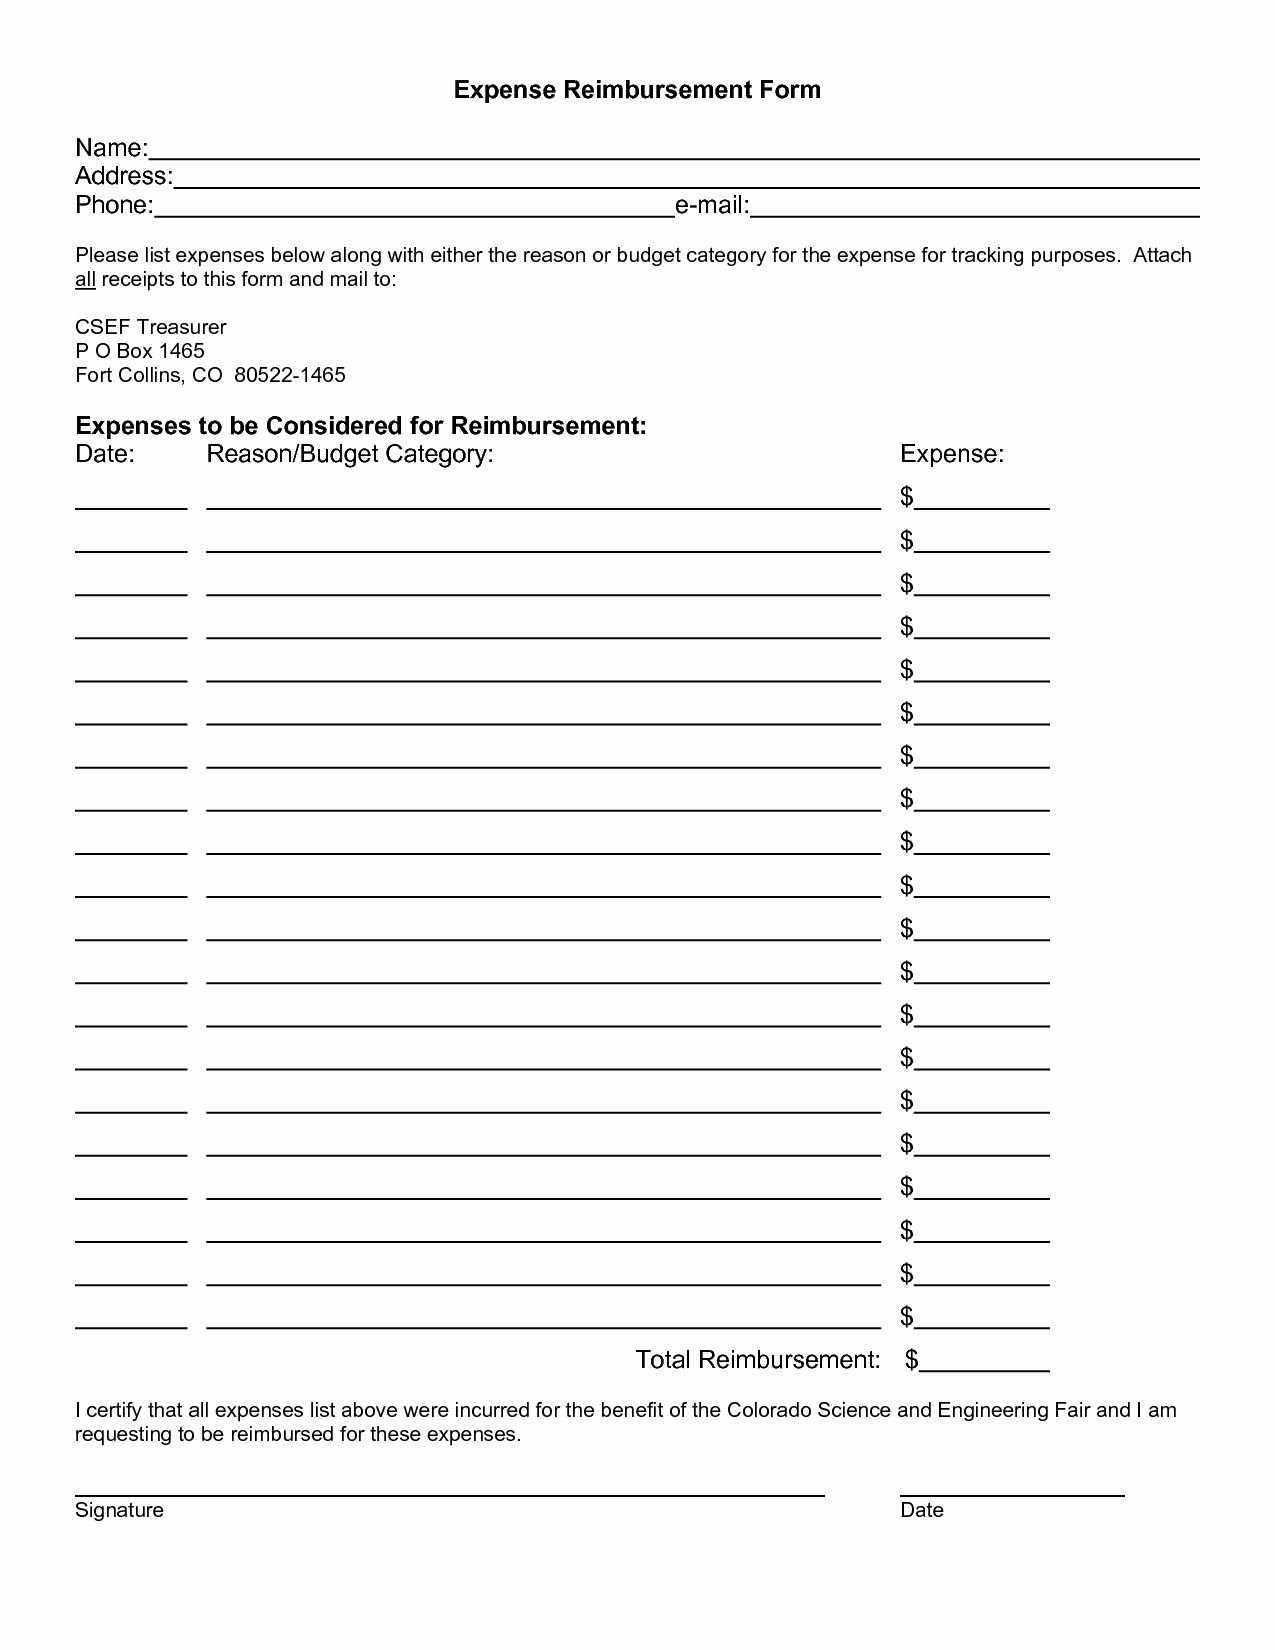 Expense Reimbursement form Template Unique Expense Reimbursement Template Portablegasgrillweber